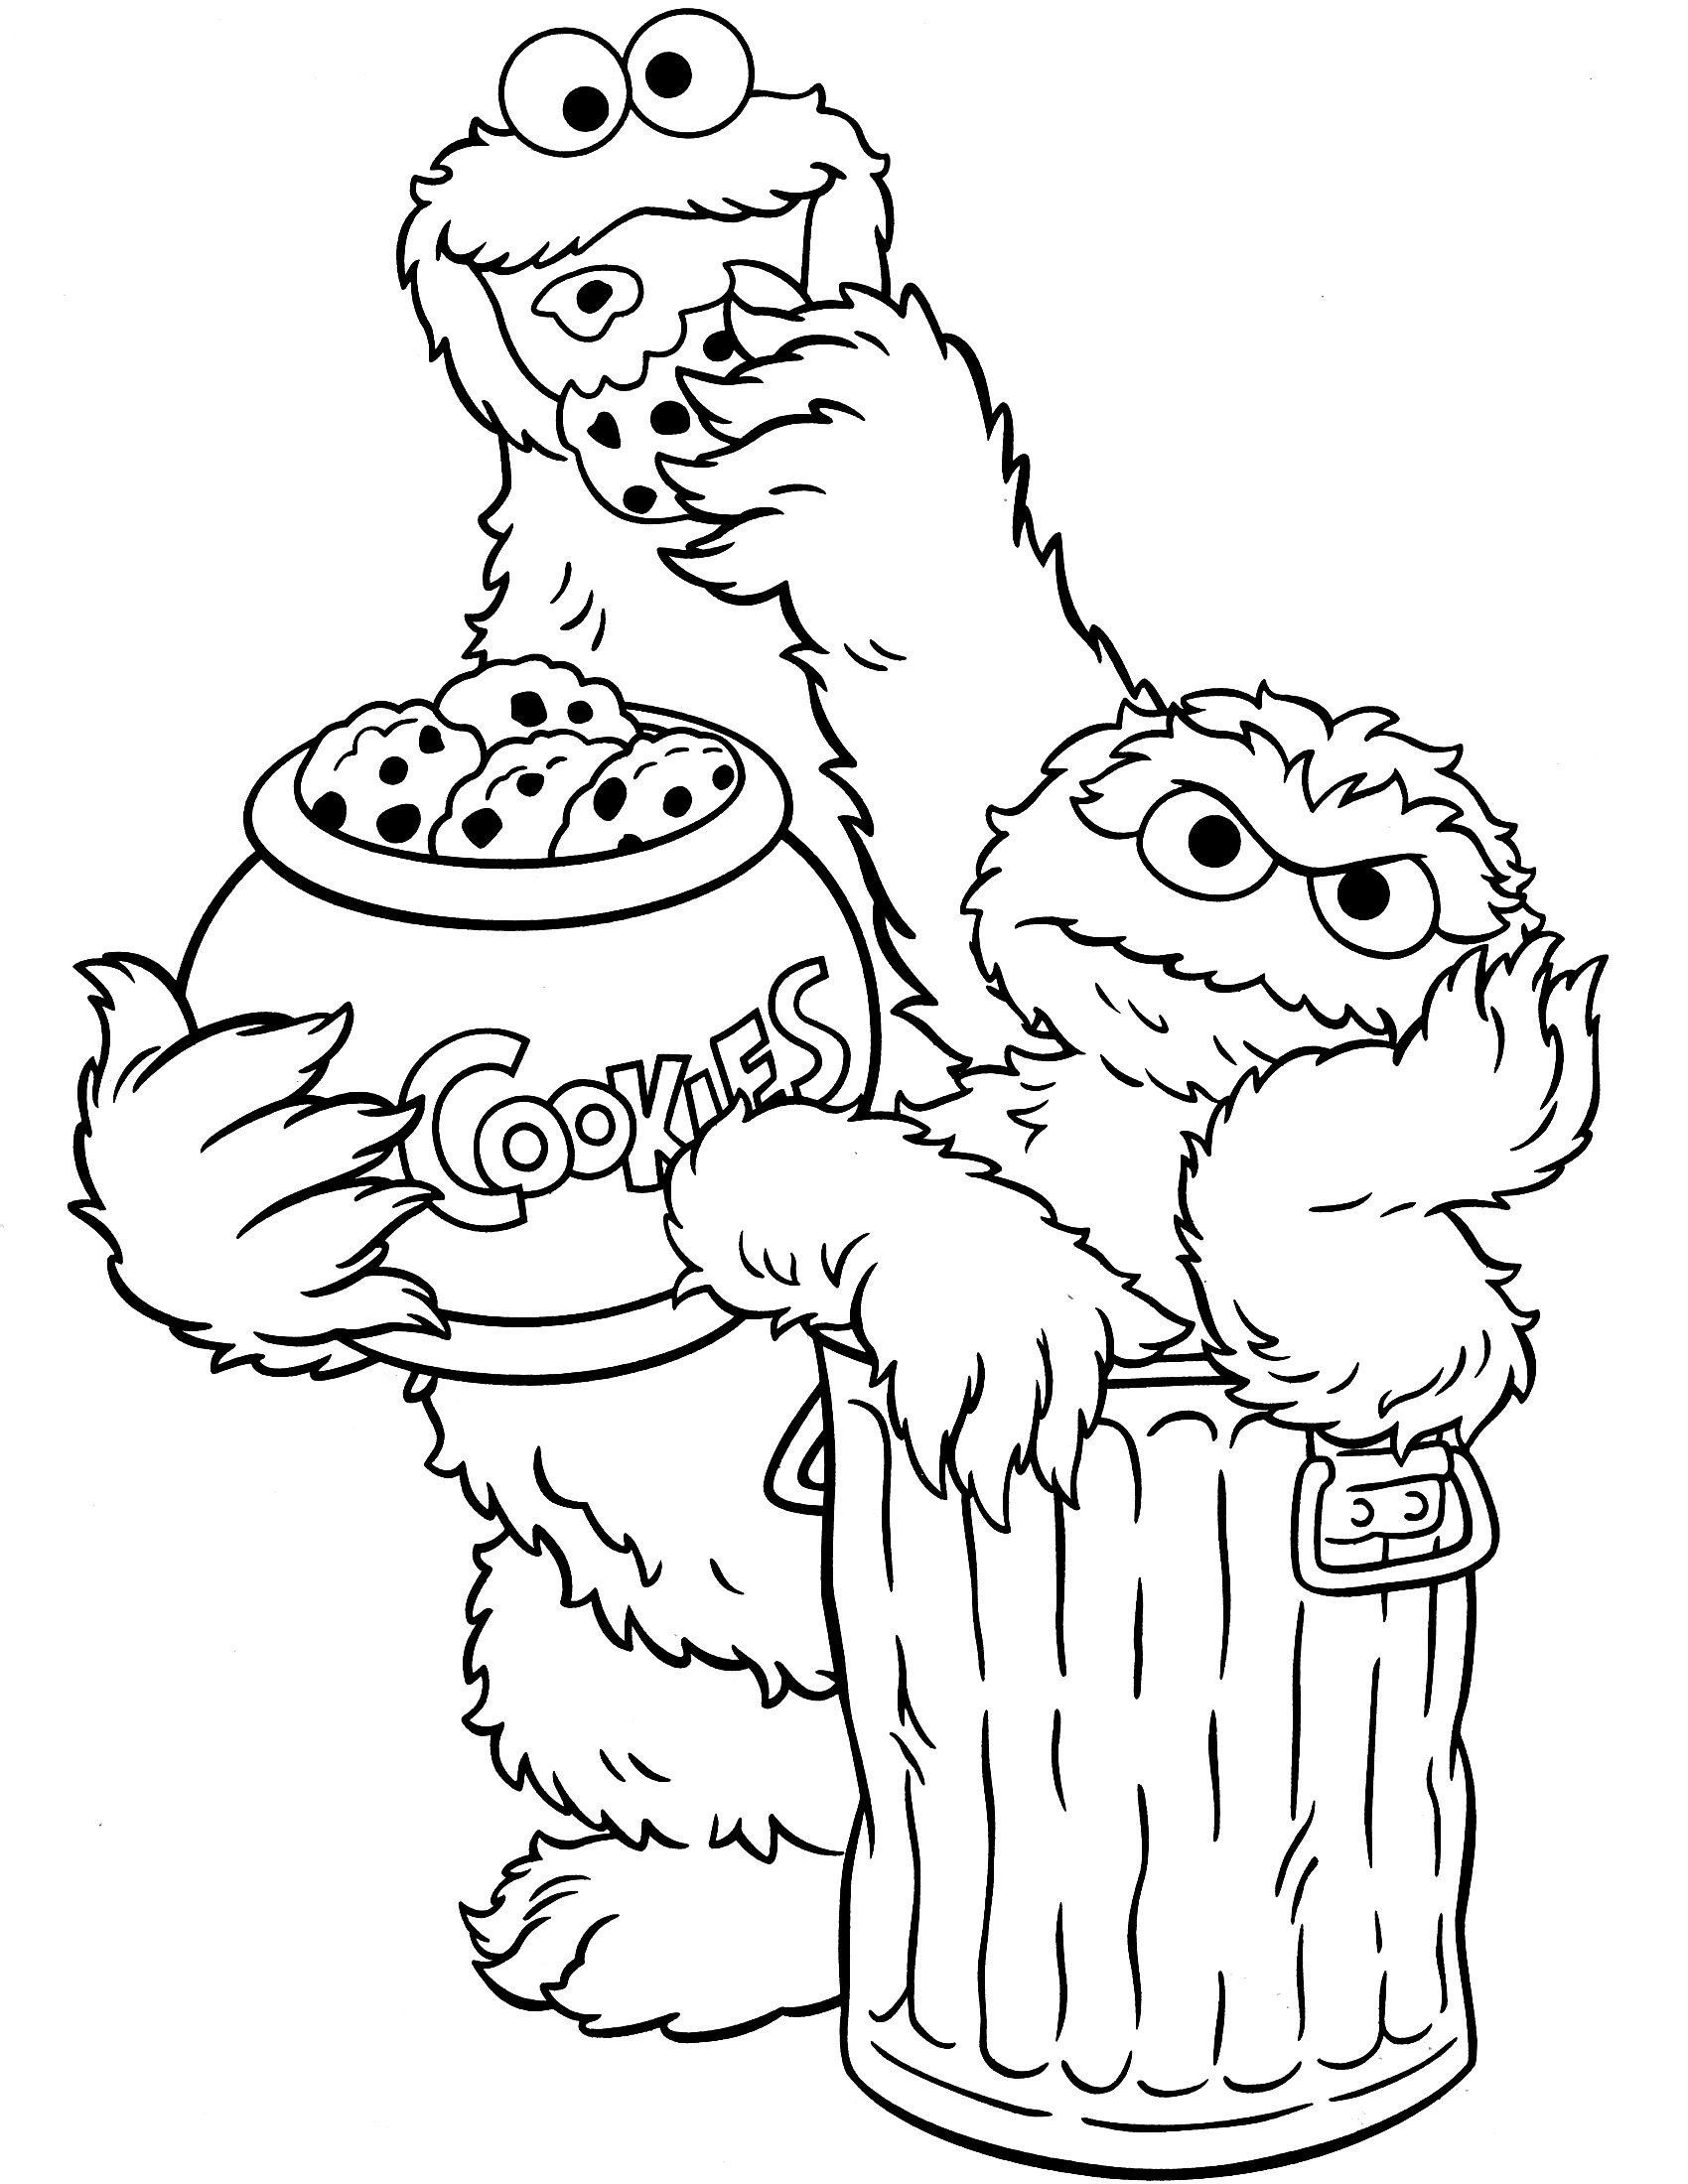 Sesame Street Coloring Pages Best Of Unique Free Coloring Pages Insects Sesame Street Coloring Pages Monster Coloring Pages Cartoon Coloring Pages